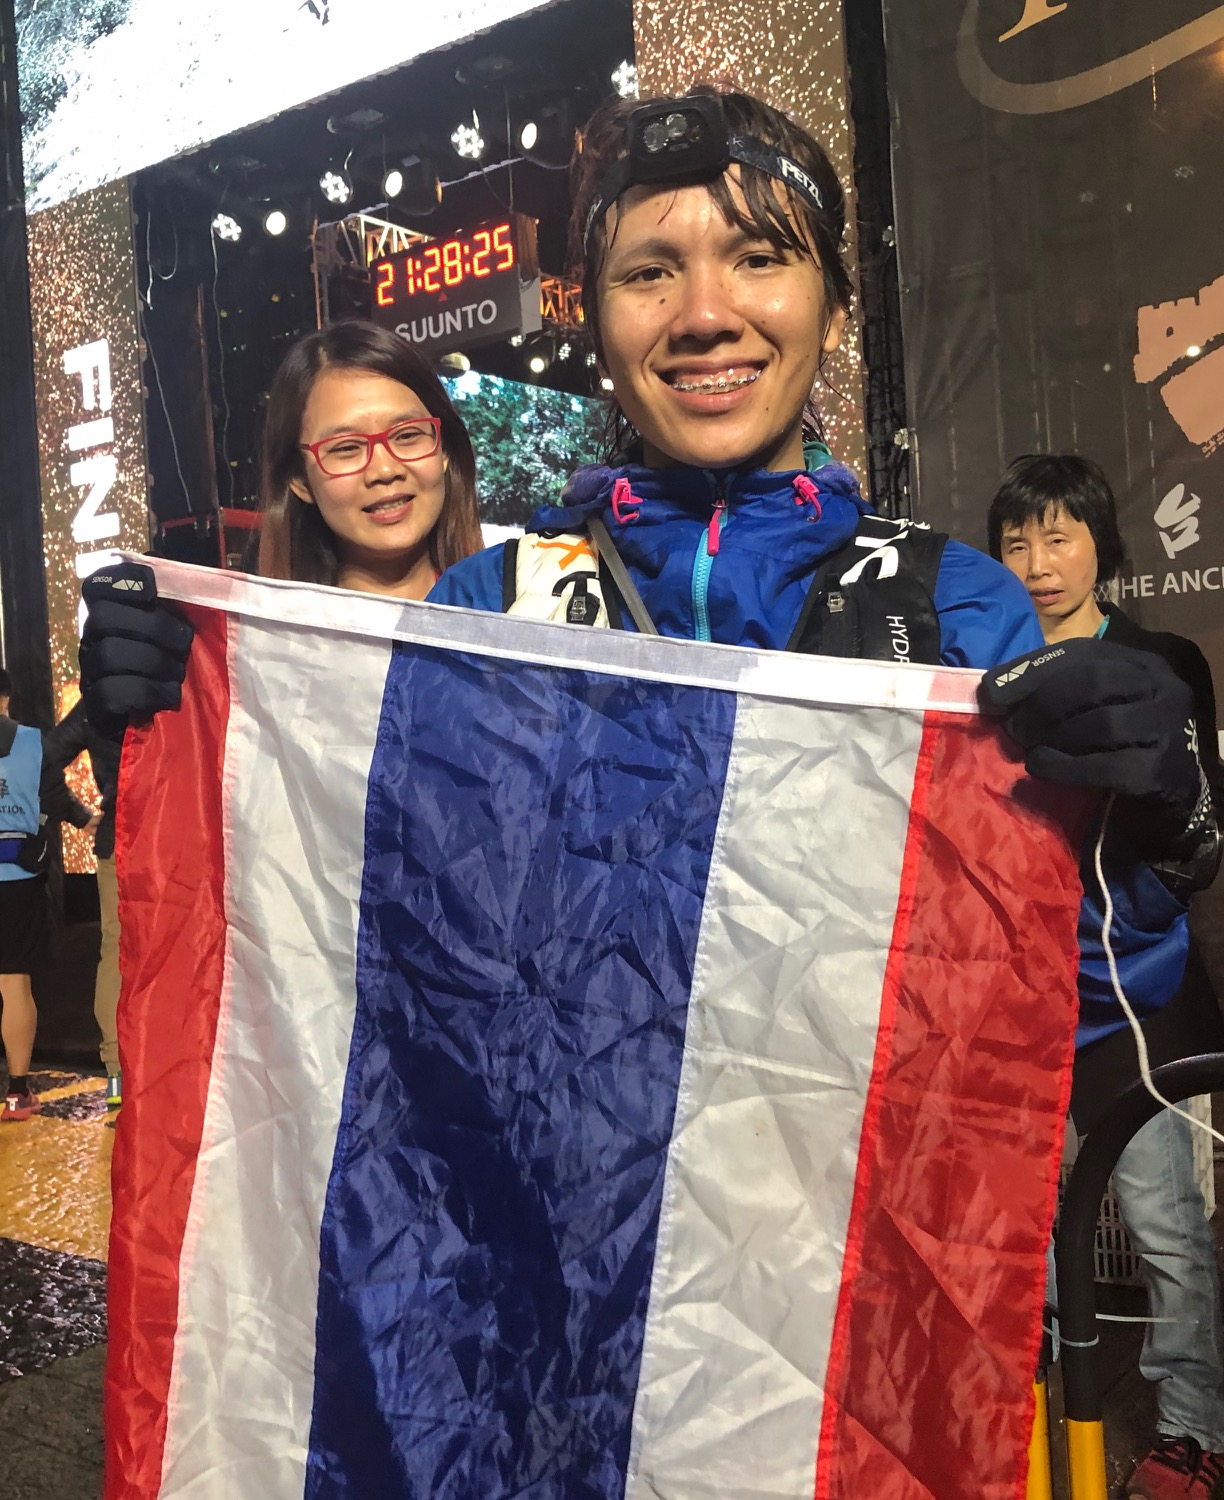 Fantastic second place on the 80K for Thailand's Cartoon Wipawee